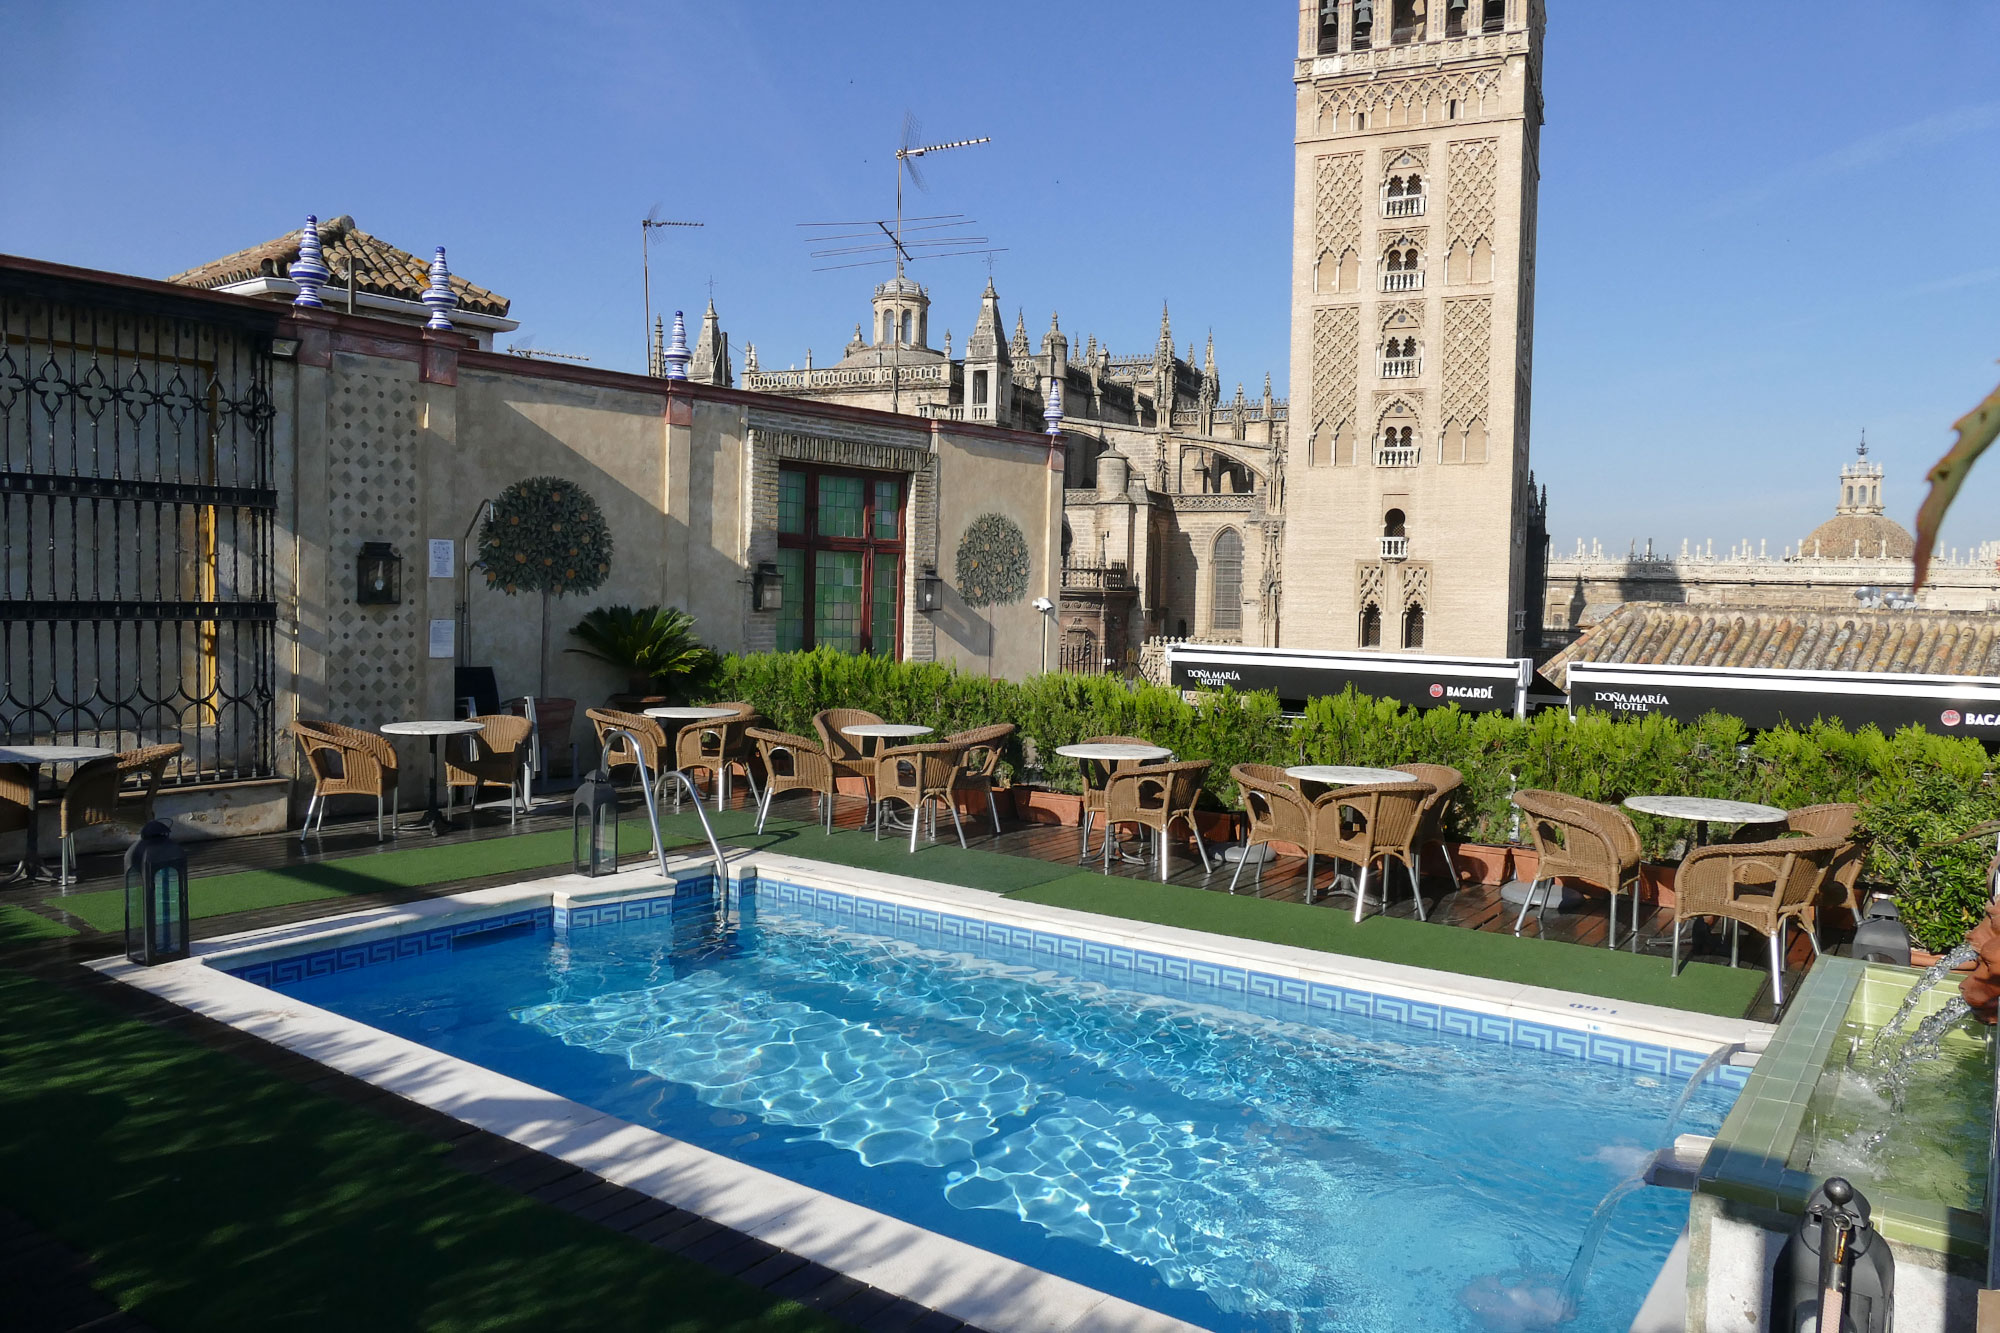 Un ba o con con vistas incre bles sevilla city centre for Piscine sevilla